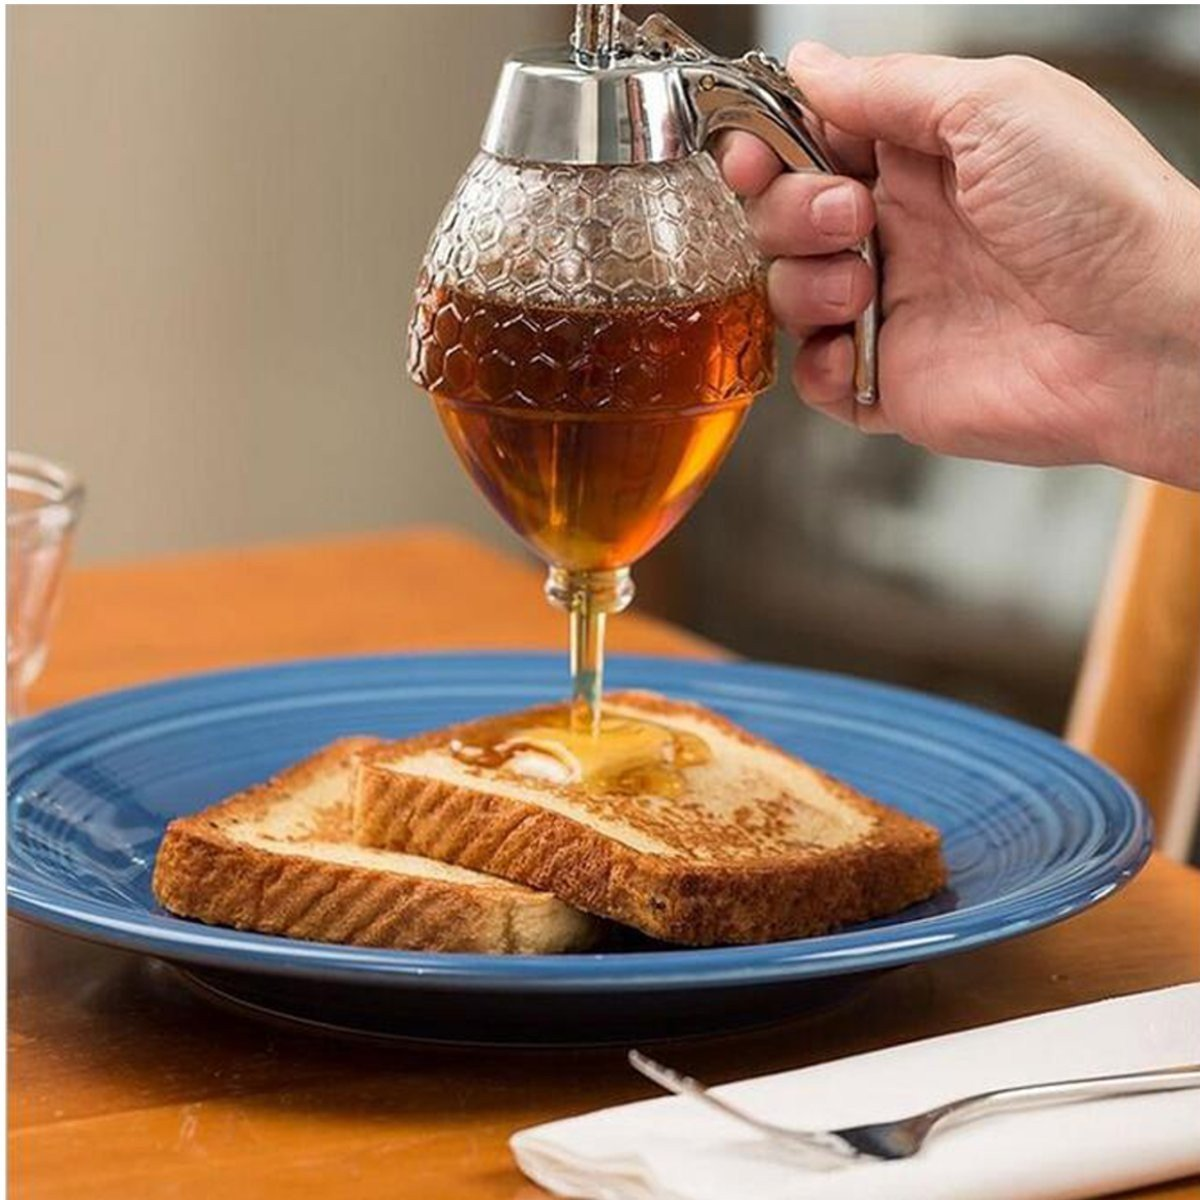 200ML Glass Jar Syrup Pot Honey Dispenser Container Hive Bee Bottle Spice Holder